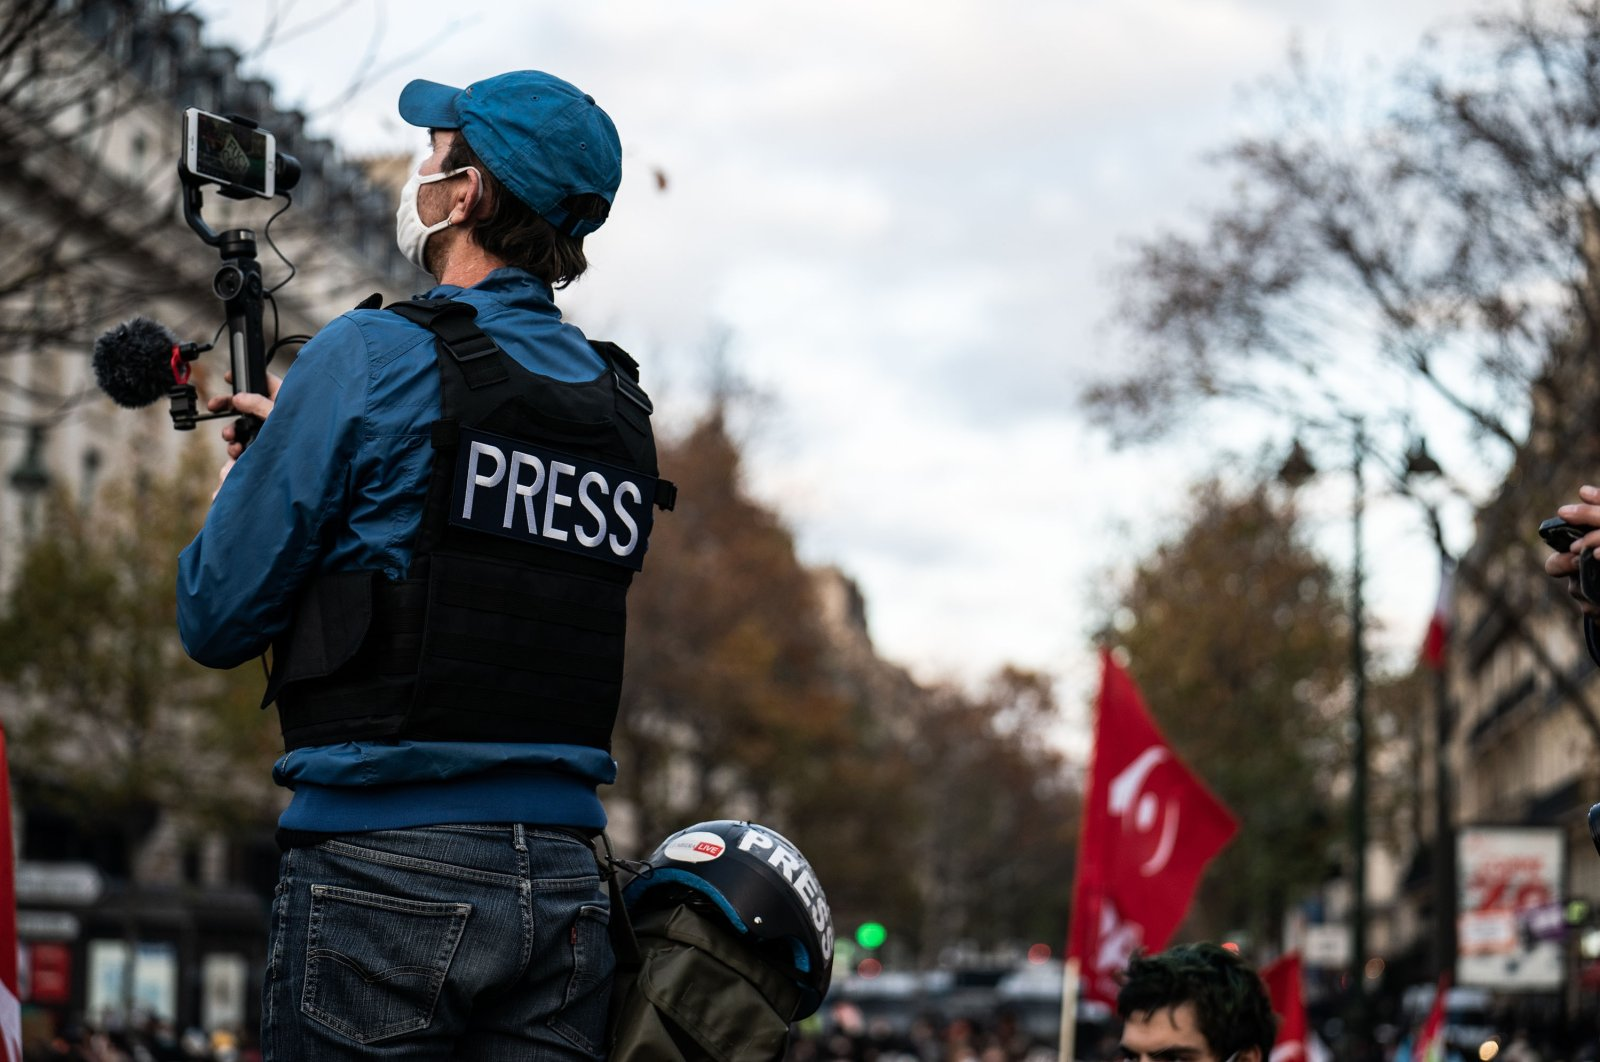 """A journalist wearing a vest and a helmet with the message """"press"""" records the demonstration on video, Paris, Nov. 21, 2020. (Reuters Photo)"""